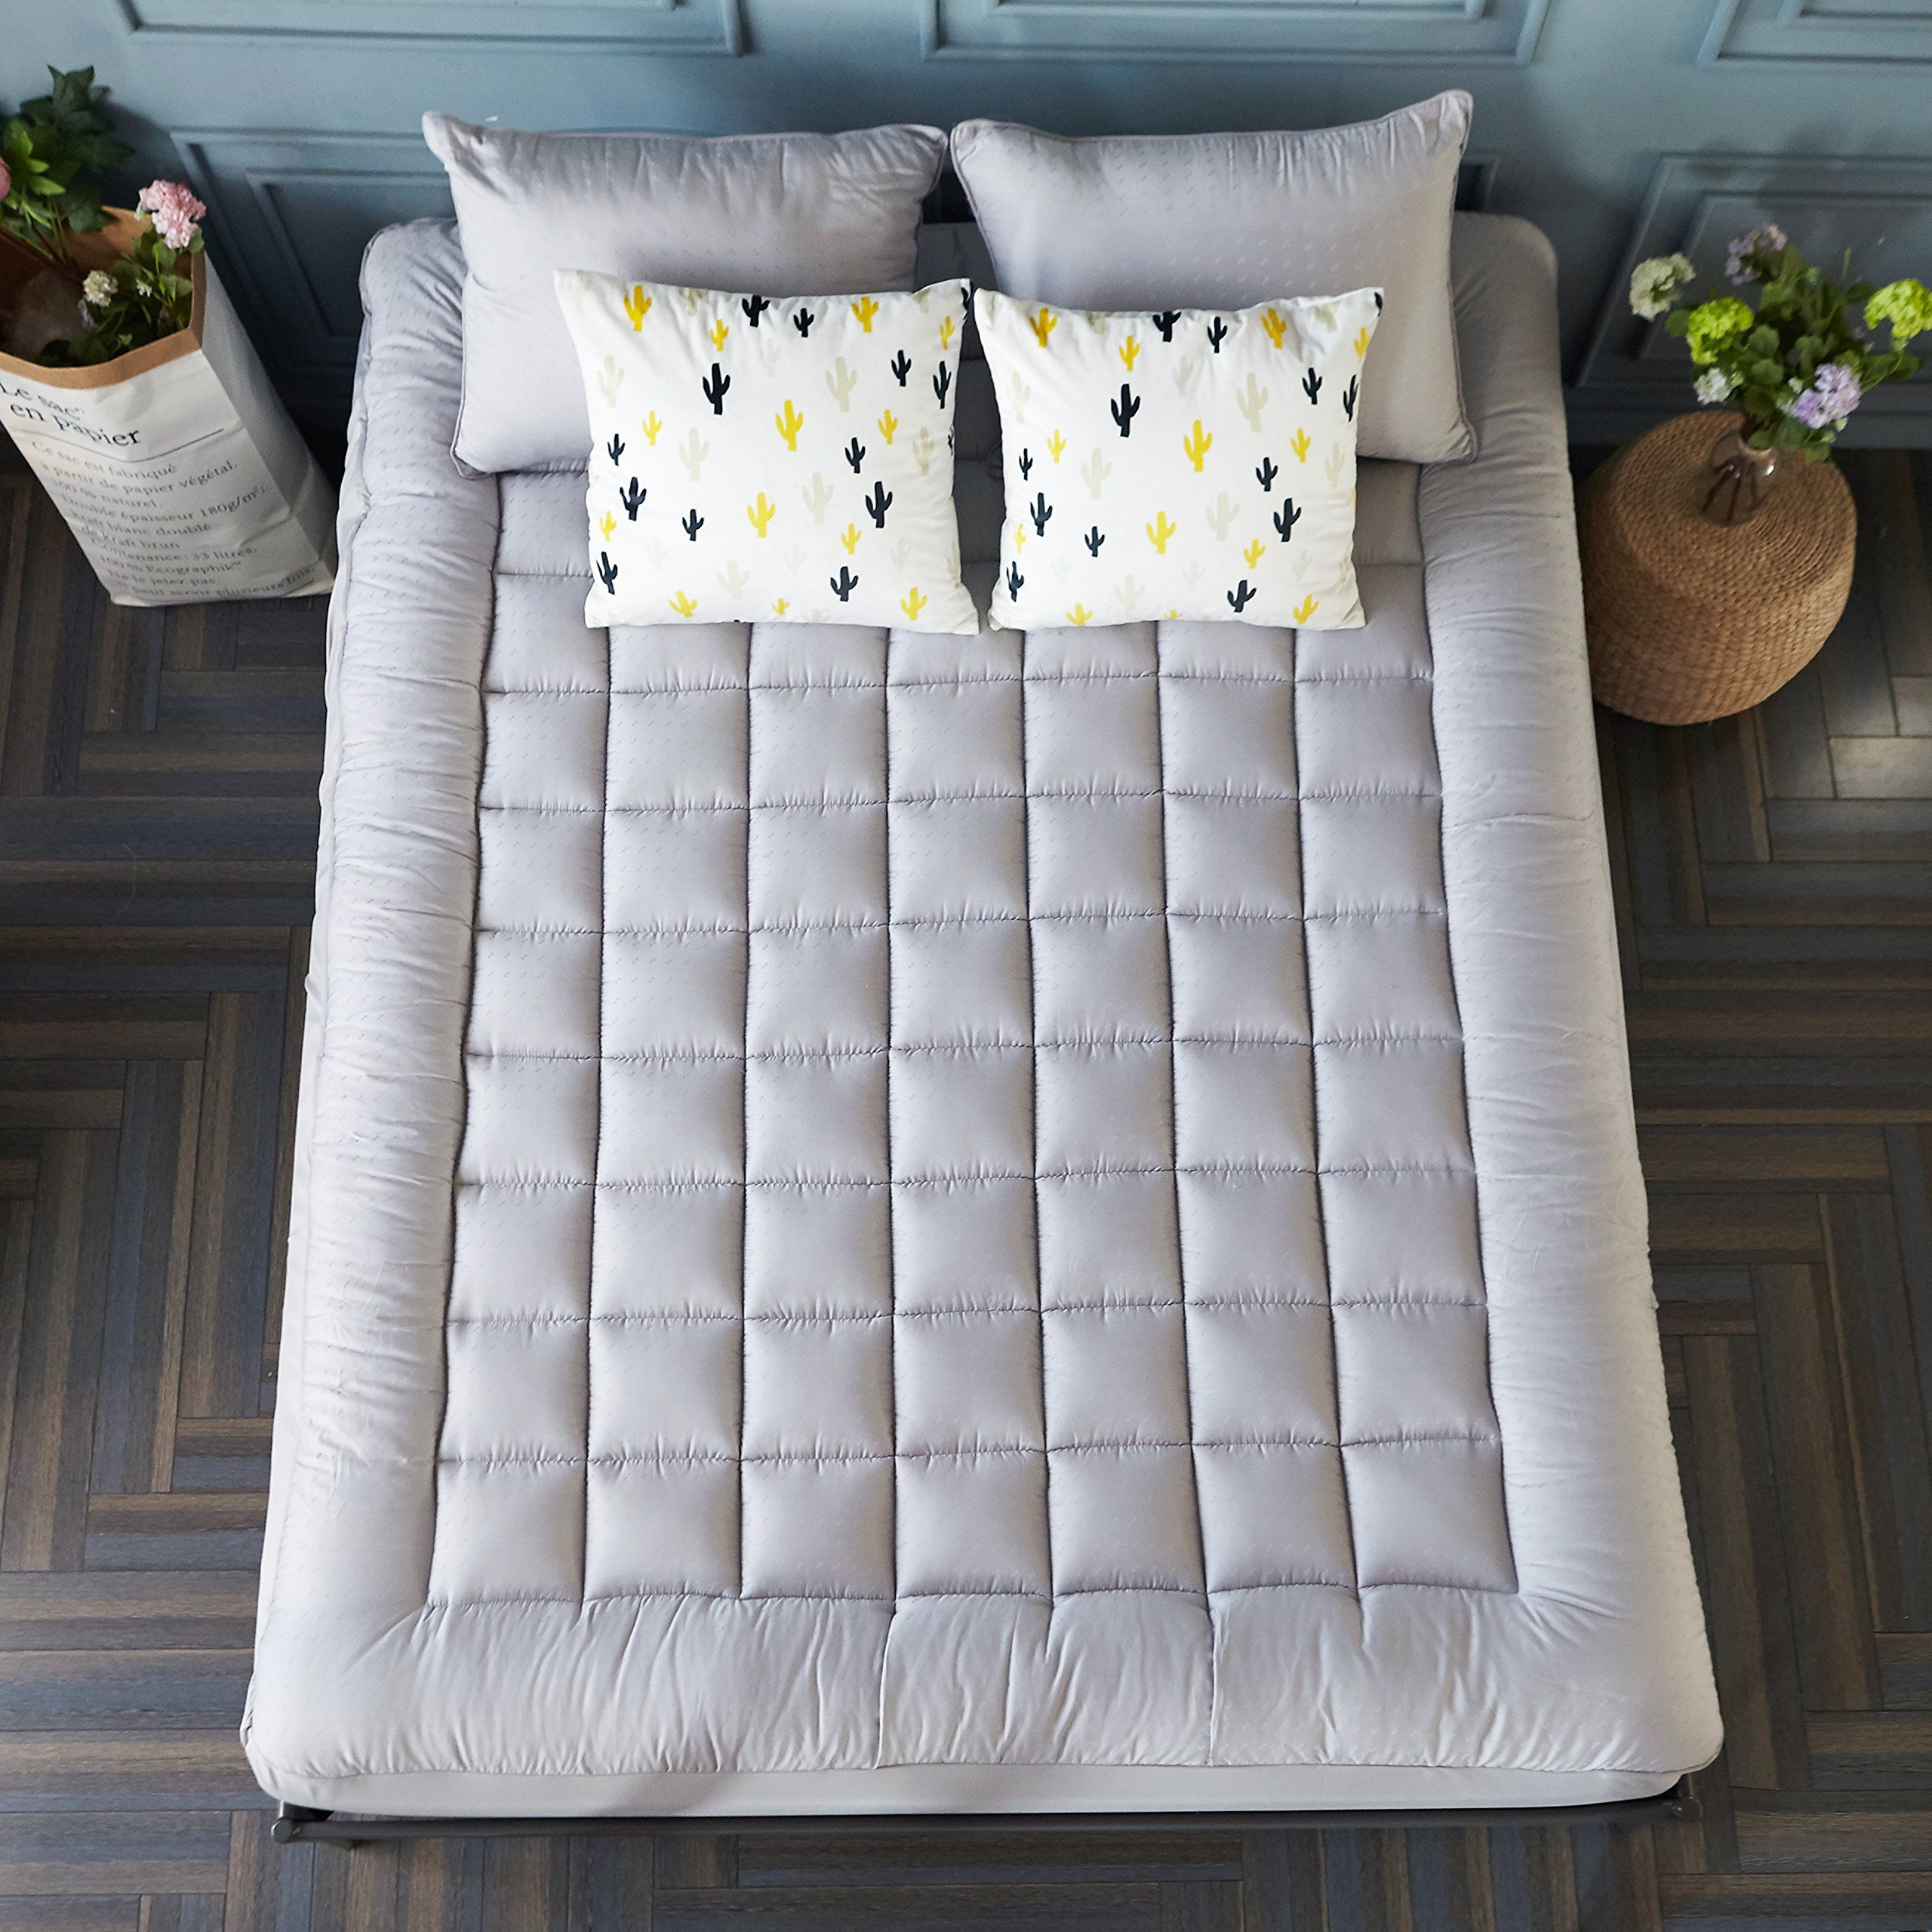 sonoro kate mattress pad cover down alternative quilted fitted